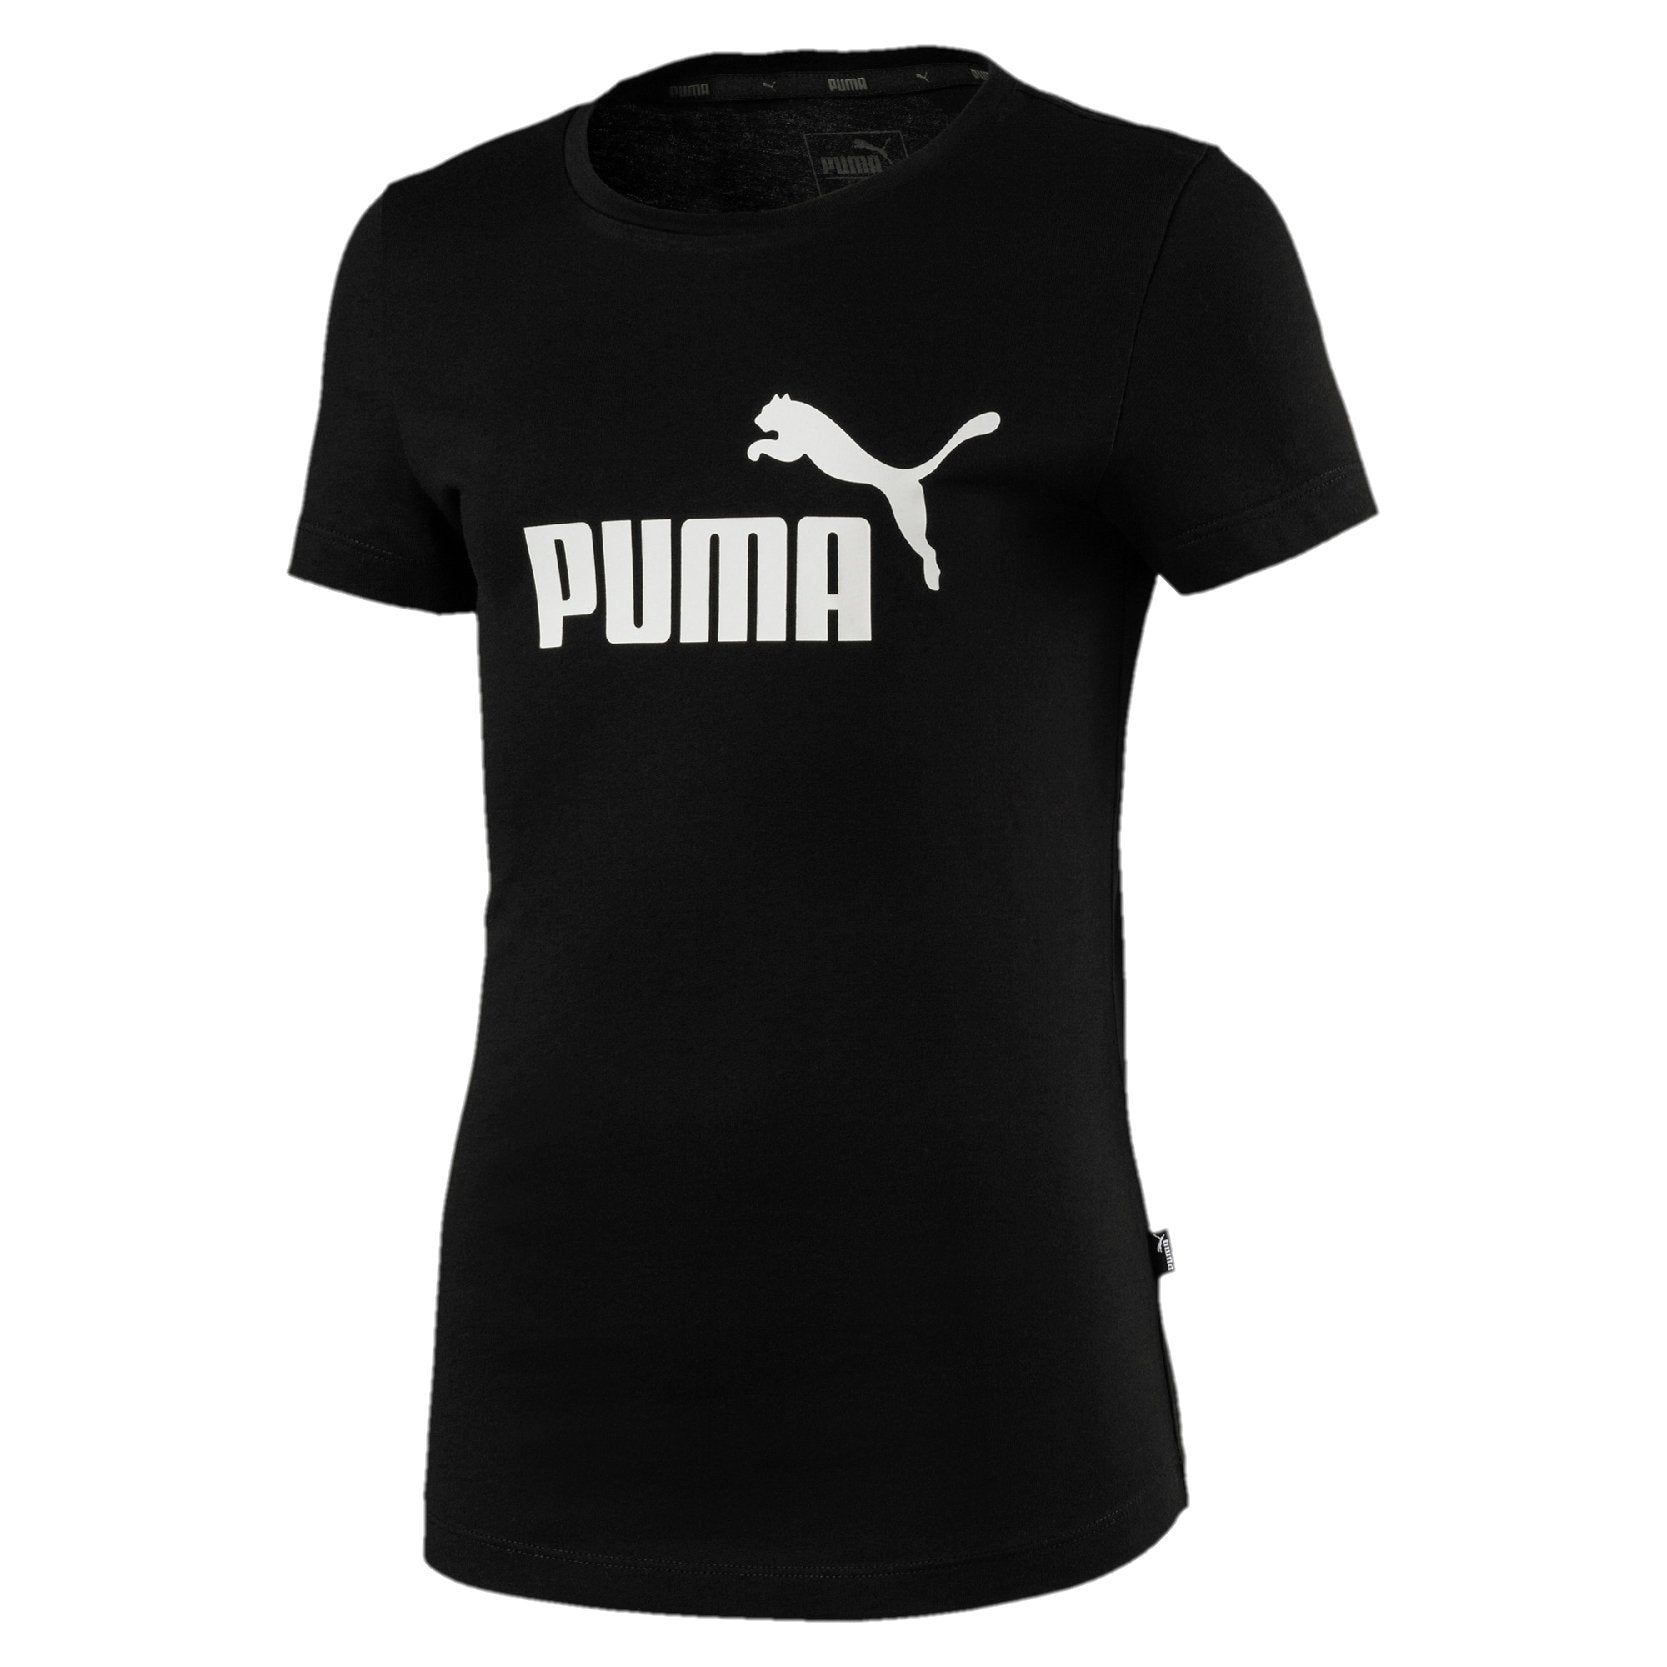 Puma Essentials Tee Girls - Cotton Black SP-ApparelTees-Kids Puma